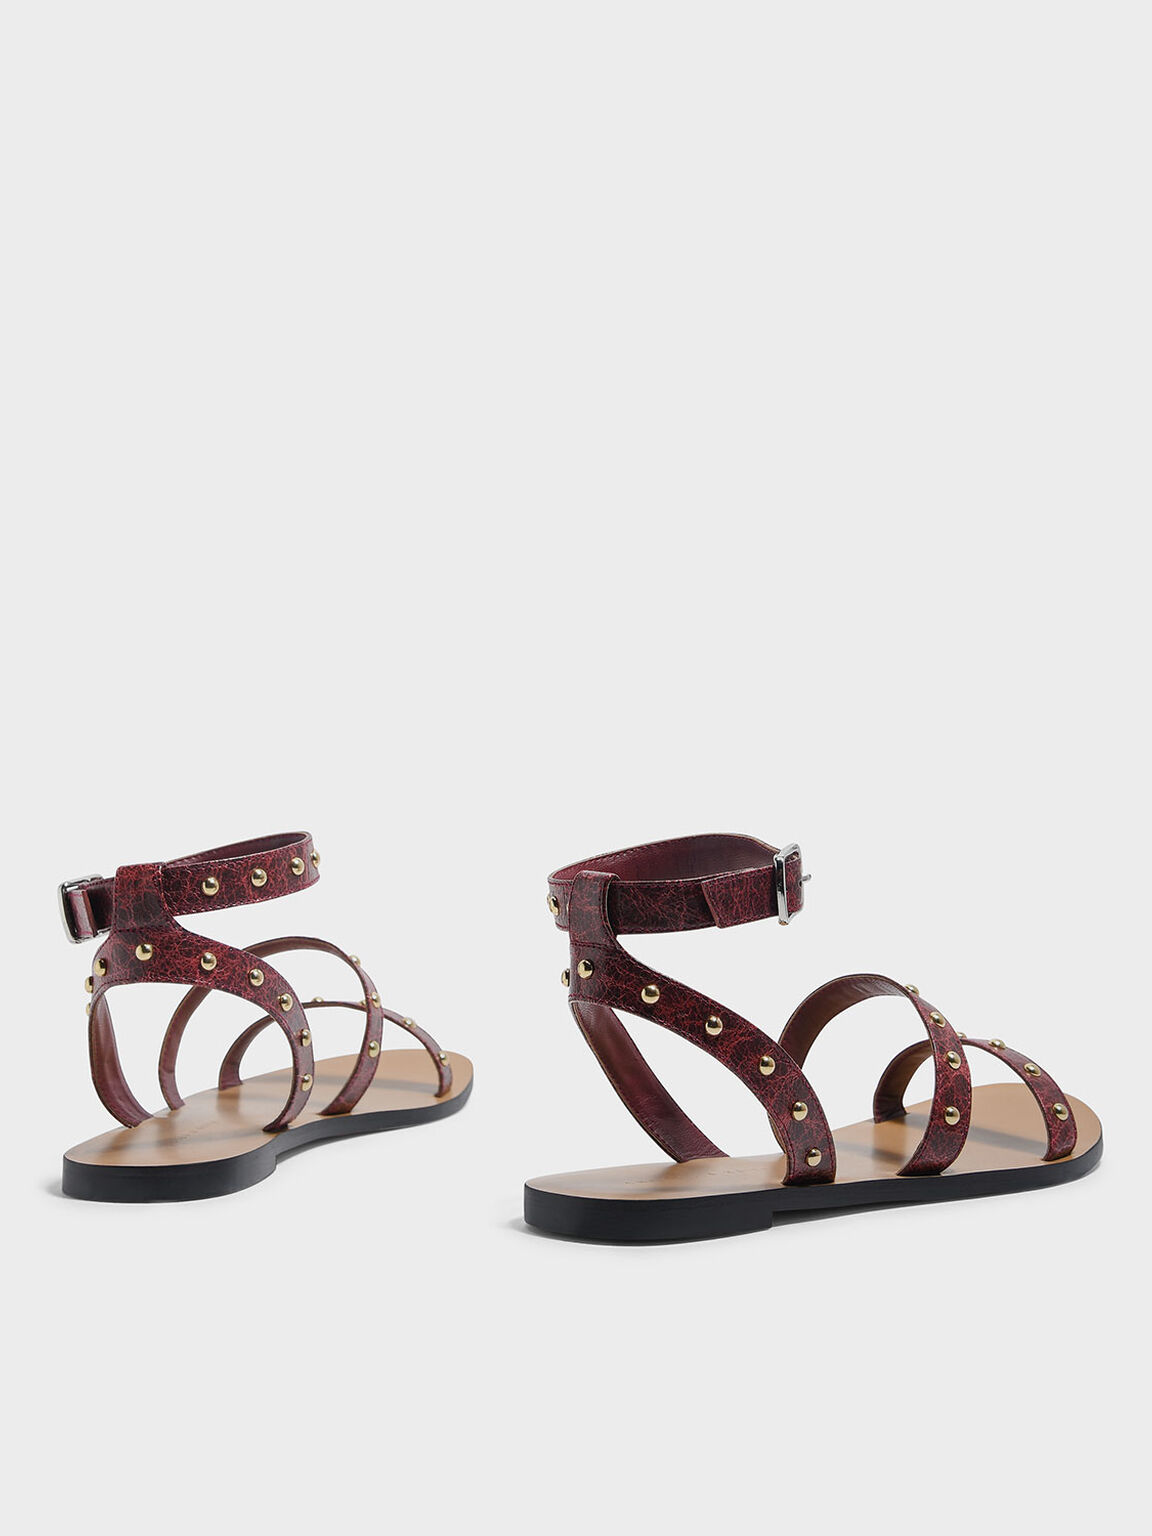 Stud Detail Sandals, Burgundy, hi-res